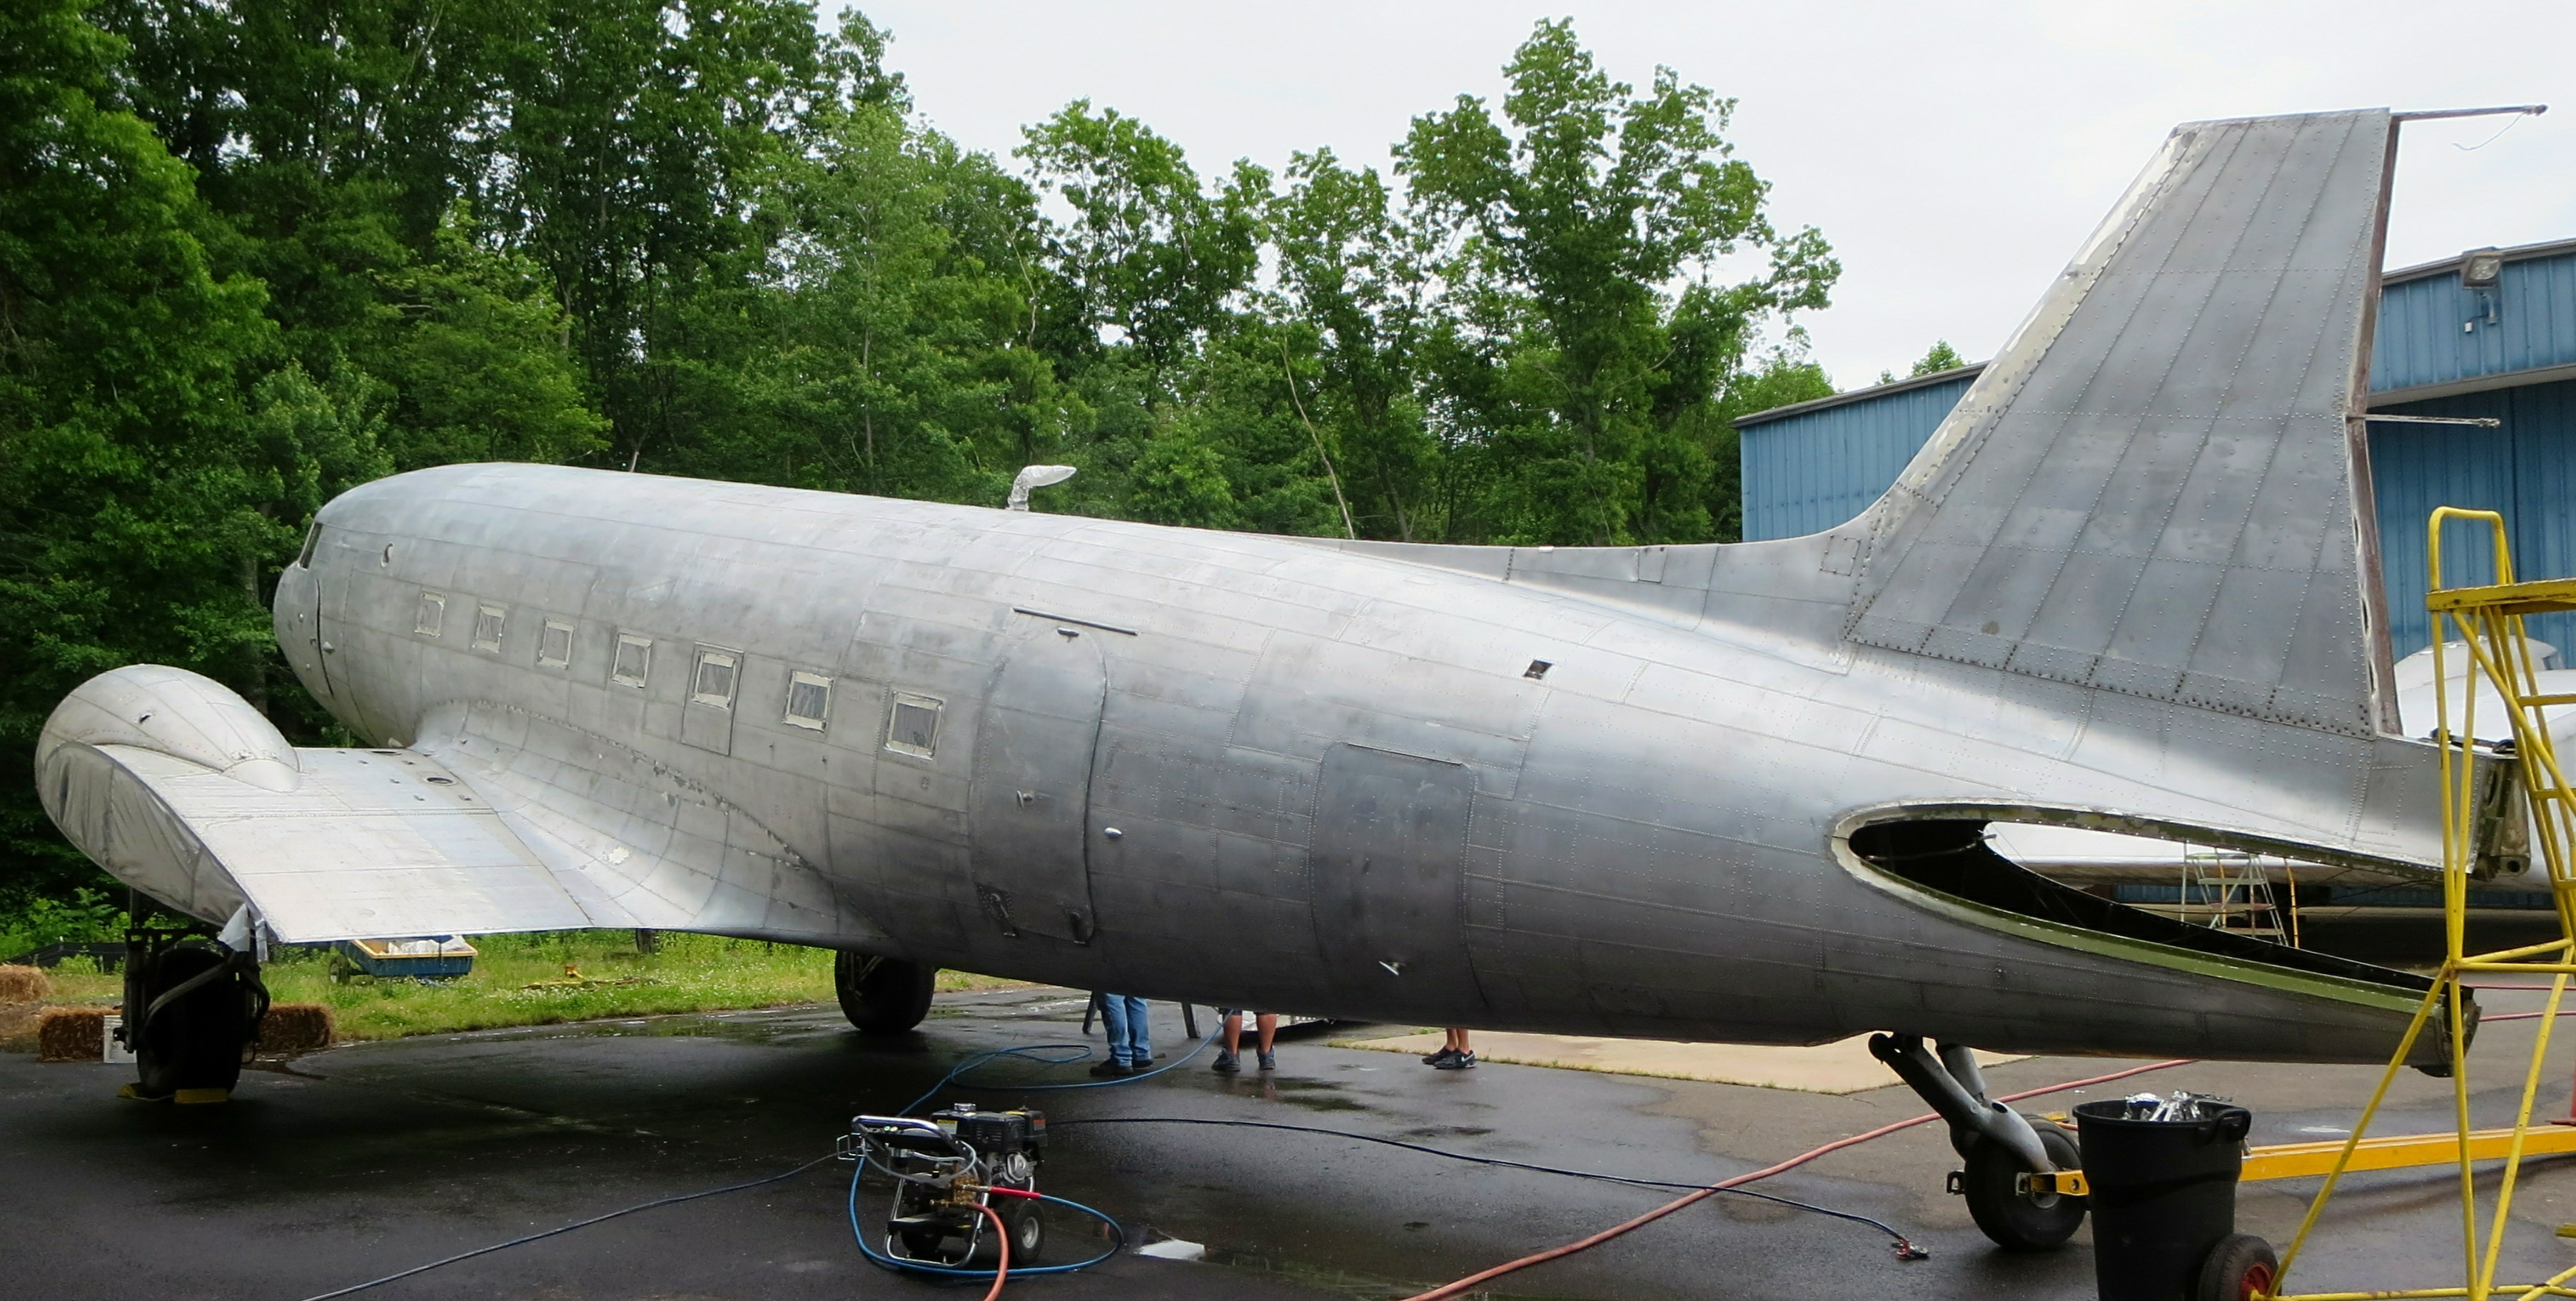 dc interiors douglas dc 3 restoration The New England Air Museumu0027s DC-3 following its paint stripping in 2014. (